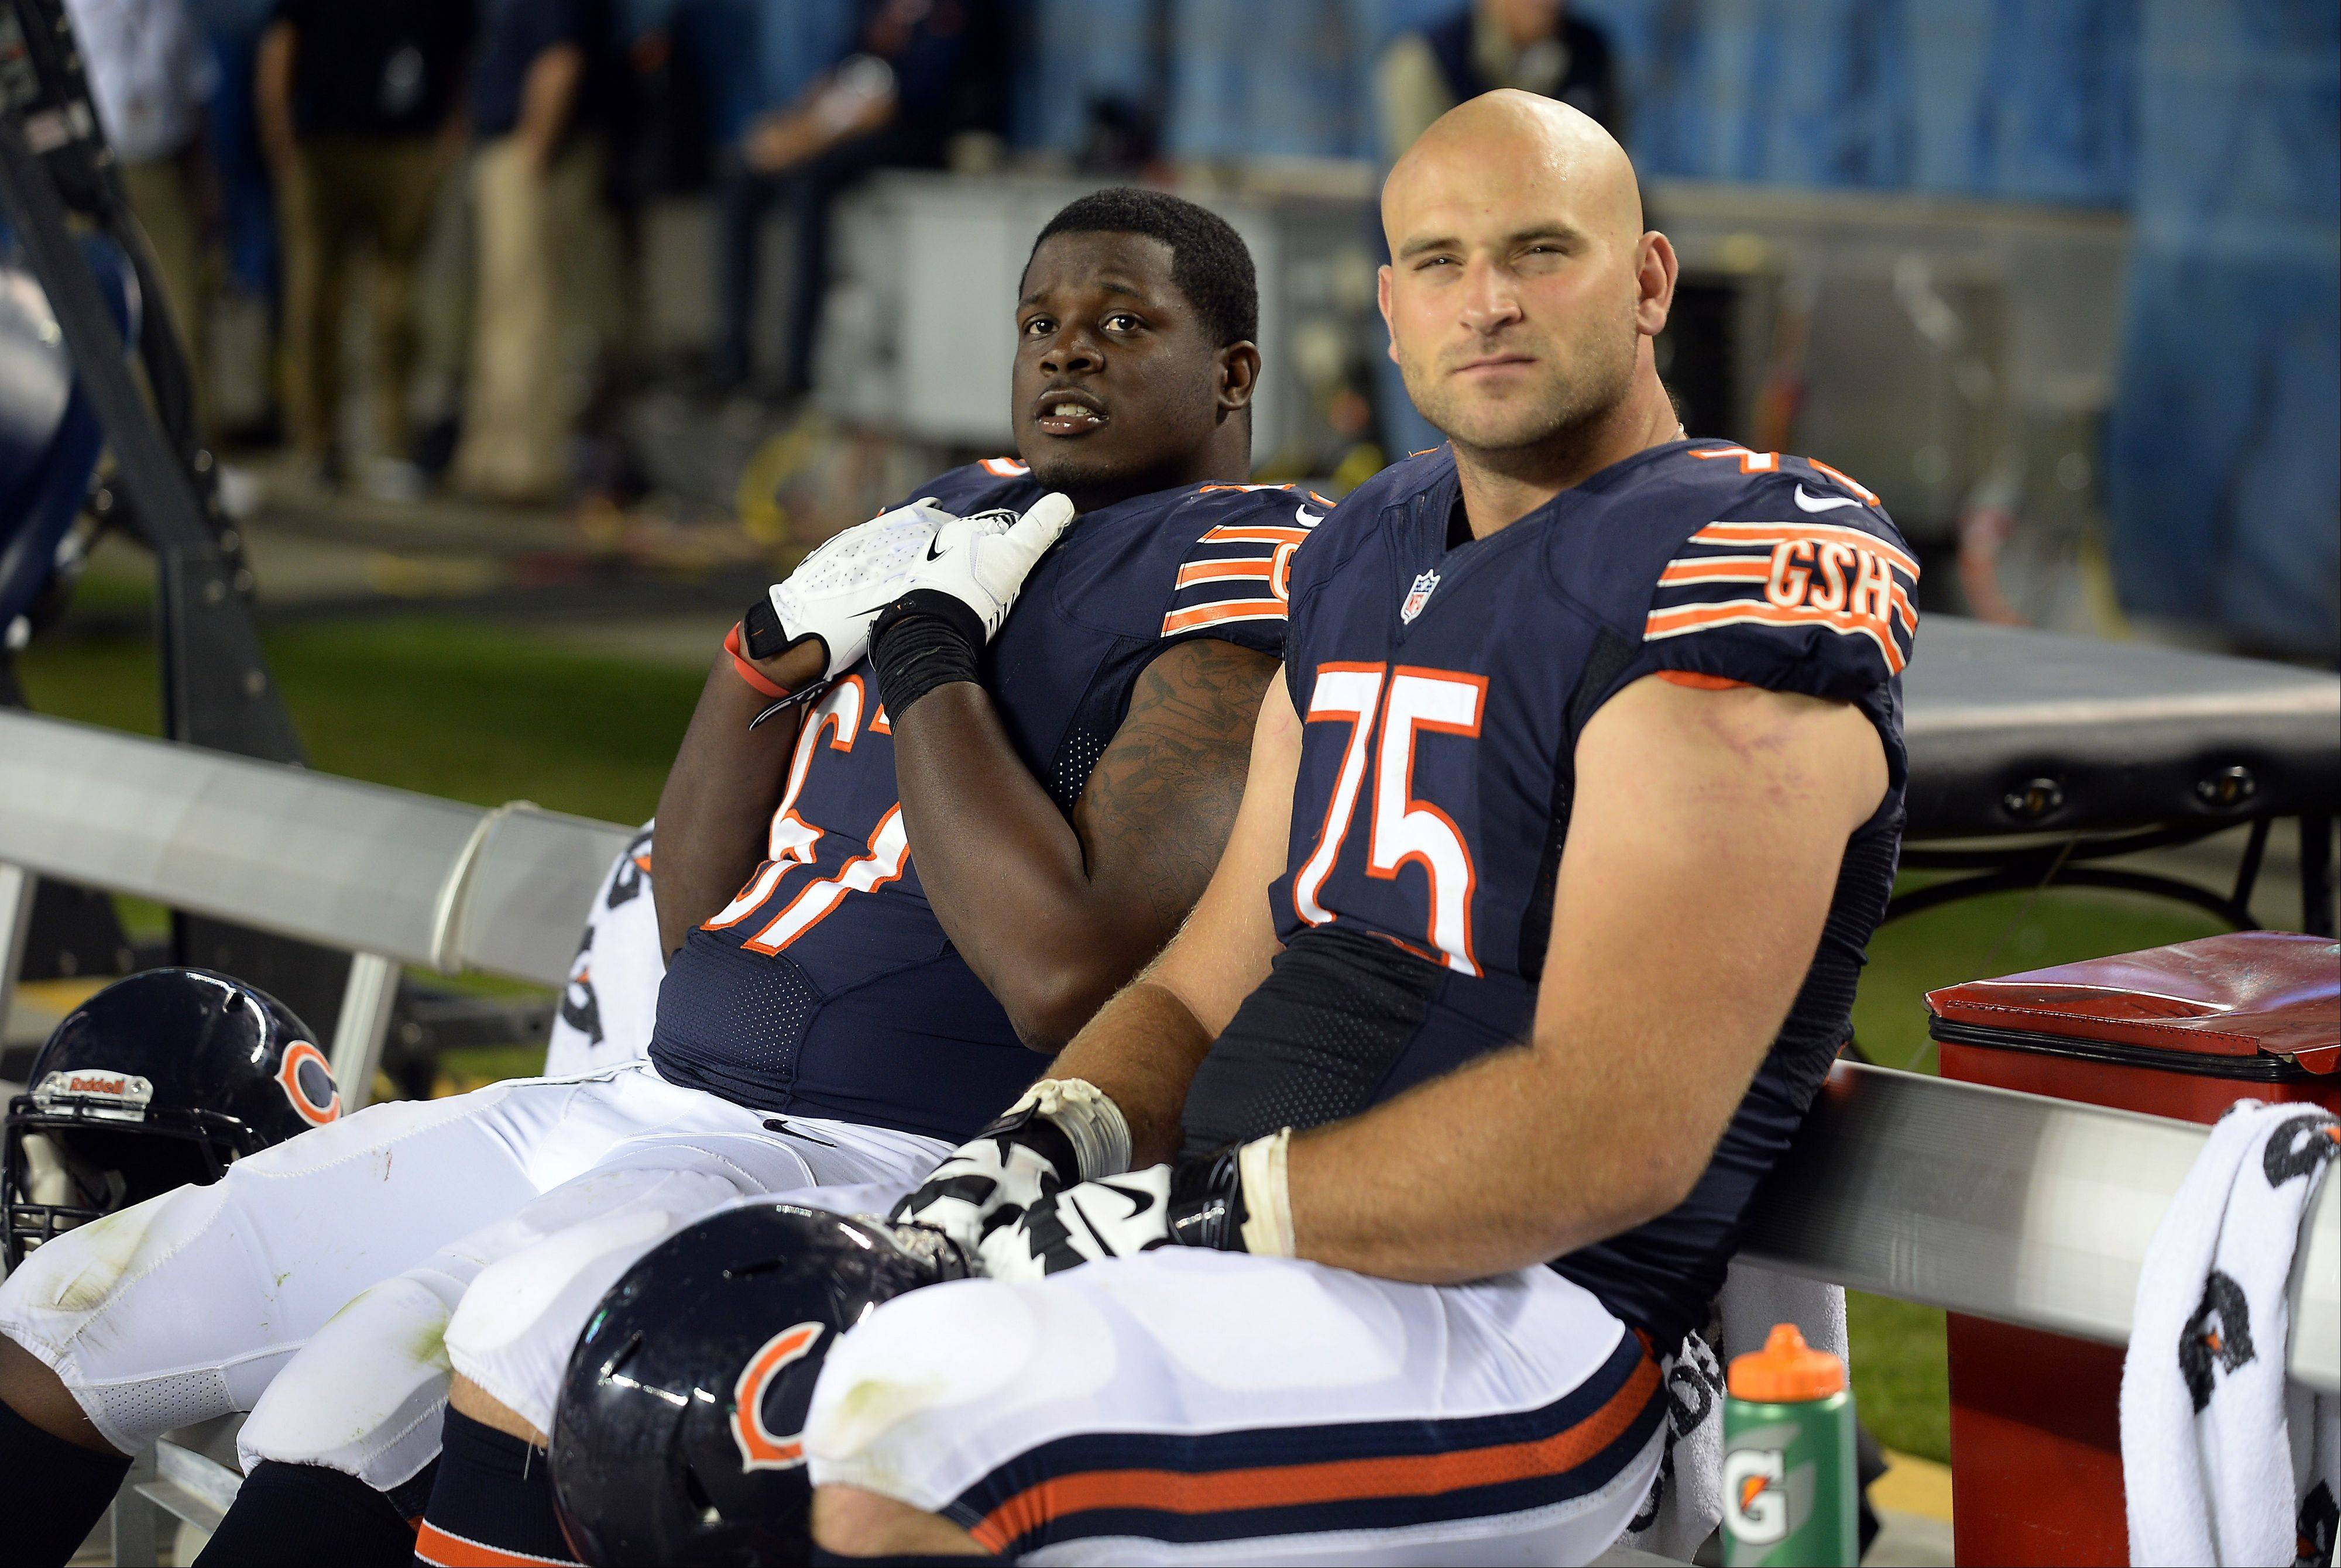 Mark Welsh/mwelsh@dailyherald.com � Bears Kyle Long and Jordan Mills take a rest break in the 4th quarter in the preseason matchup against the Chargers at Soldier Field. � �